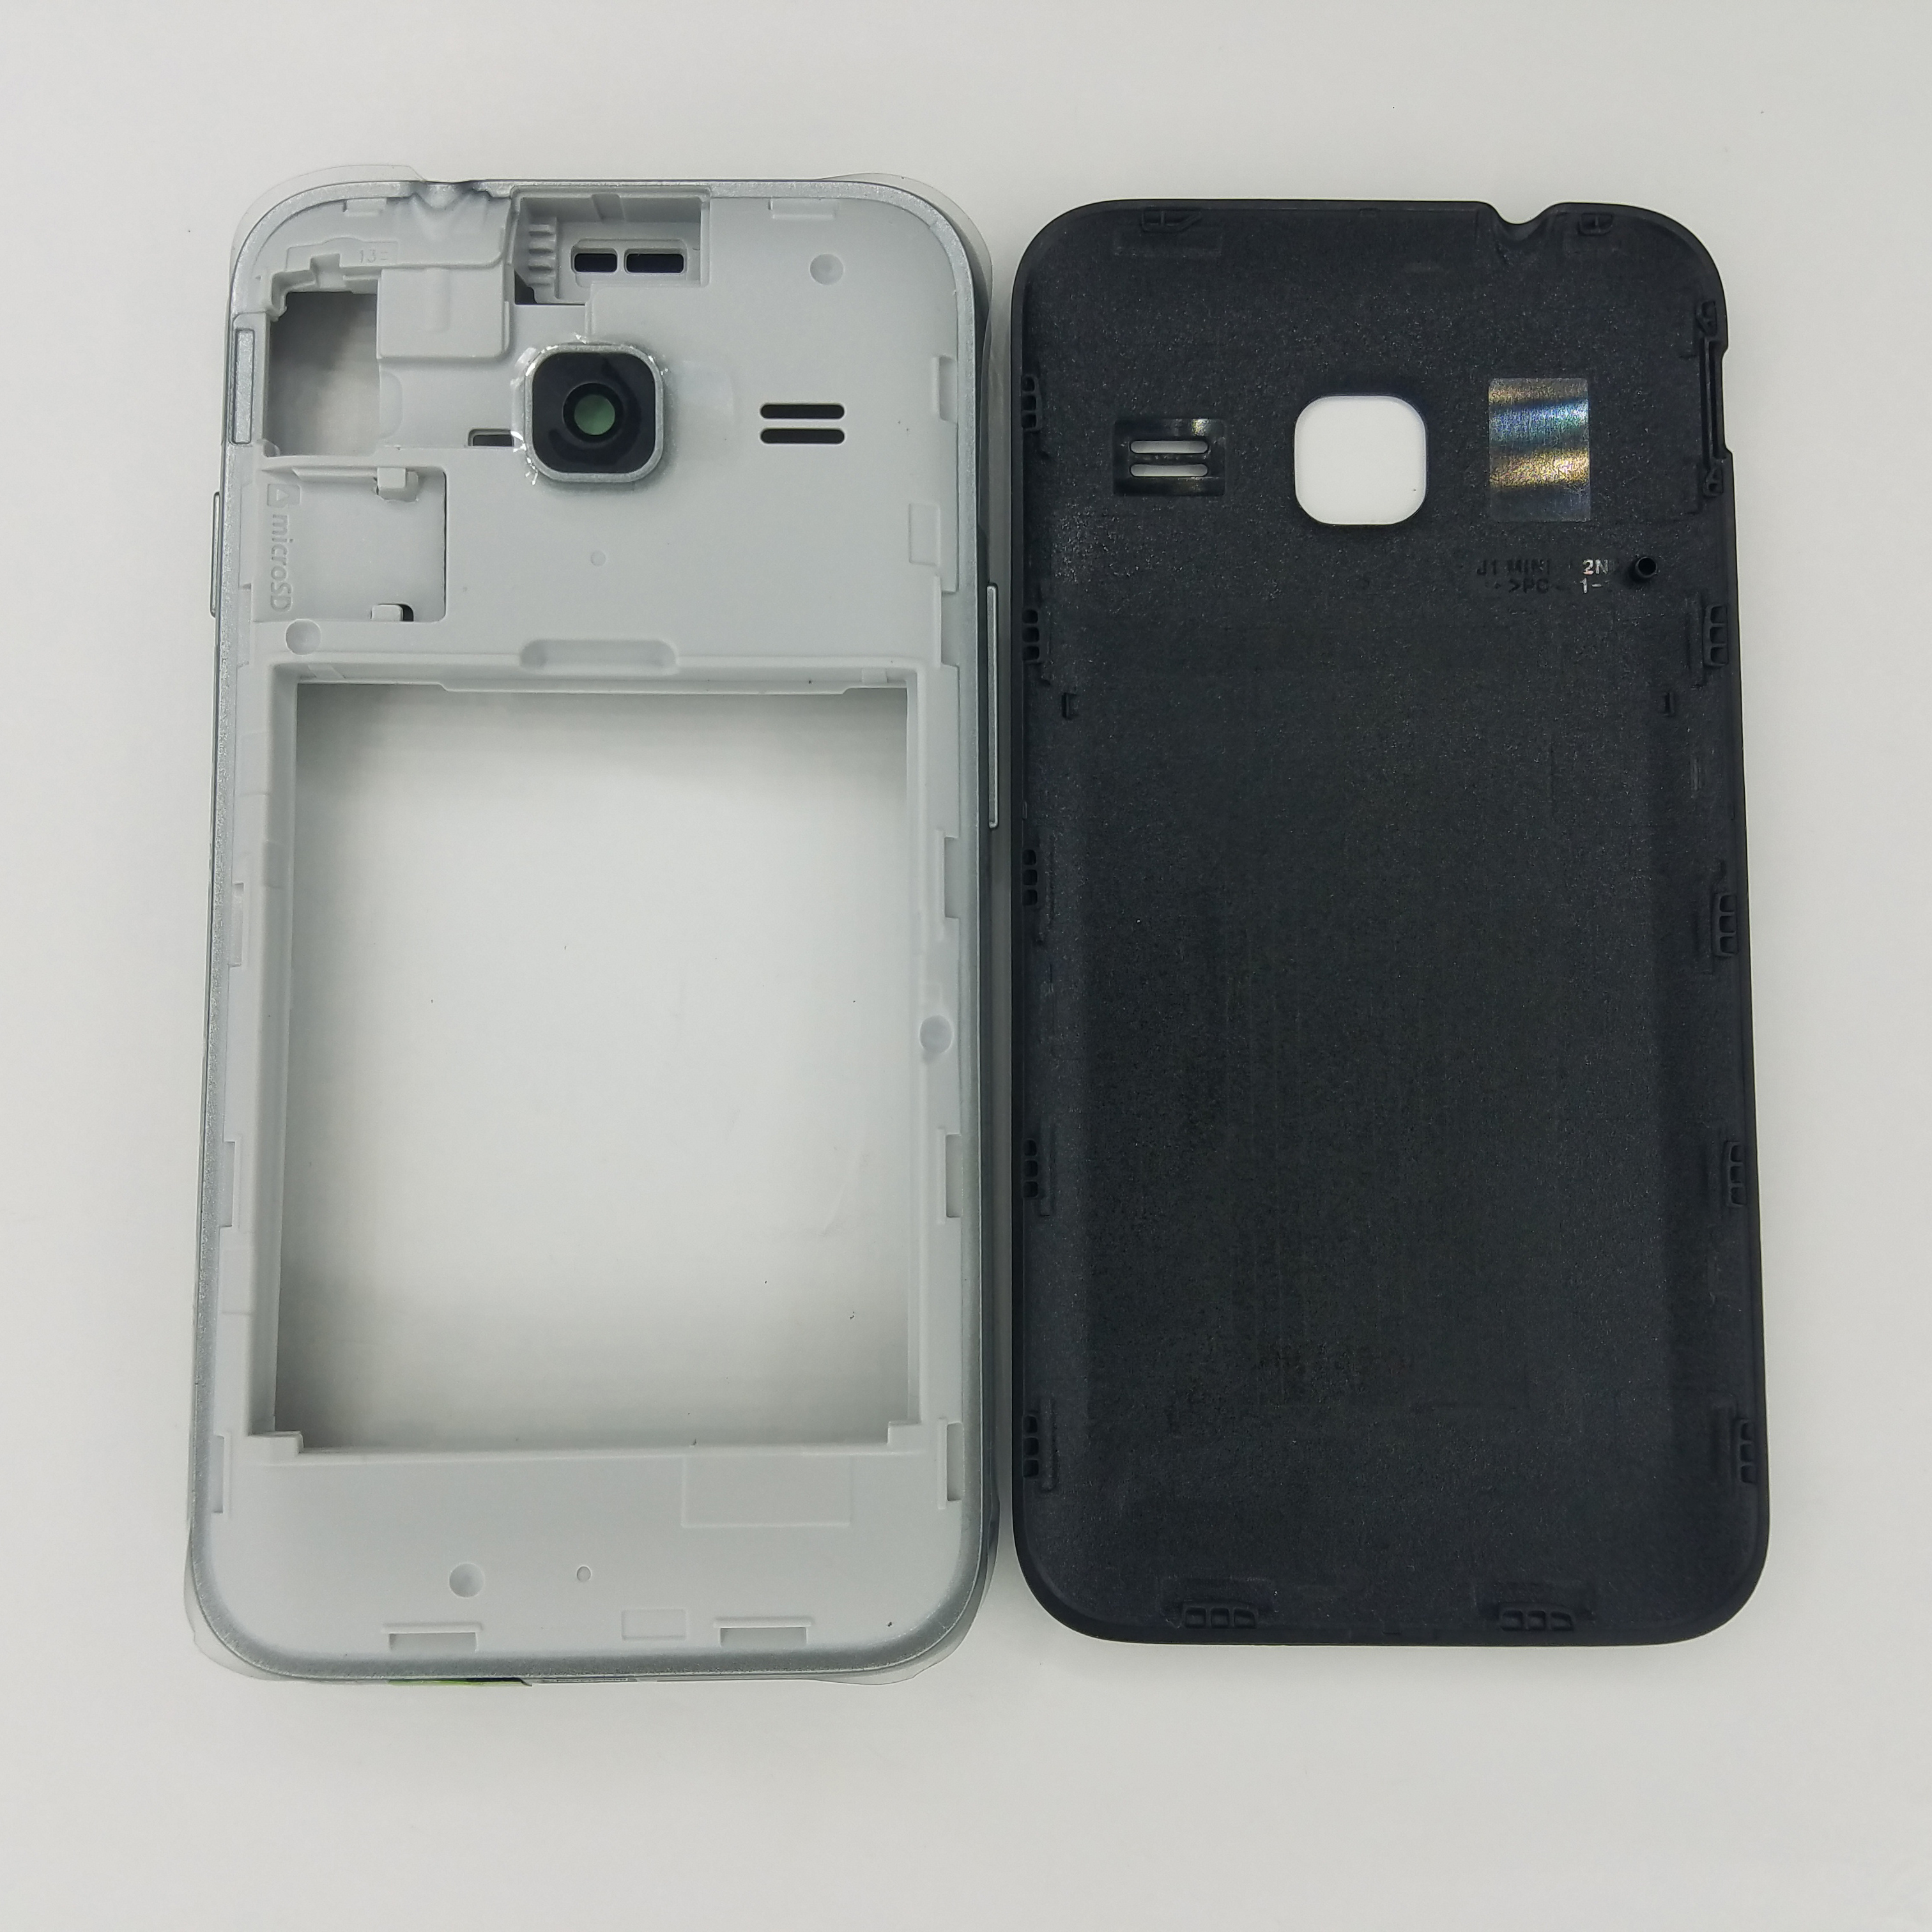 For Samsung Galaxy J1 Mini SM-J105F J105F J105H J105FN J105 Phone Chassis Housing Middle Frame With Back Panel Battery Cover